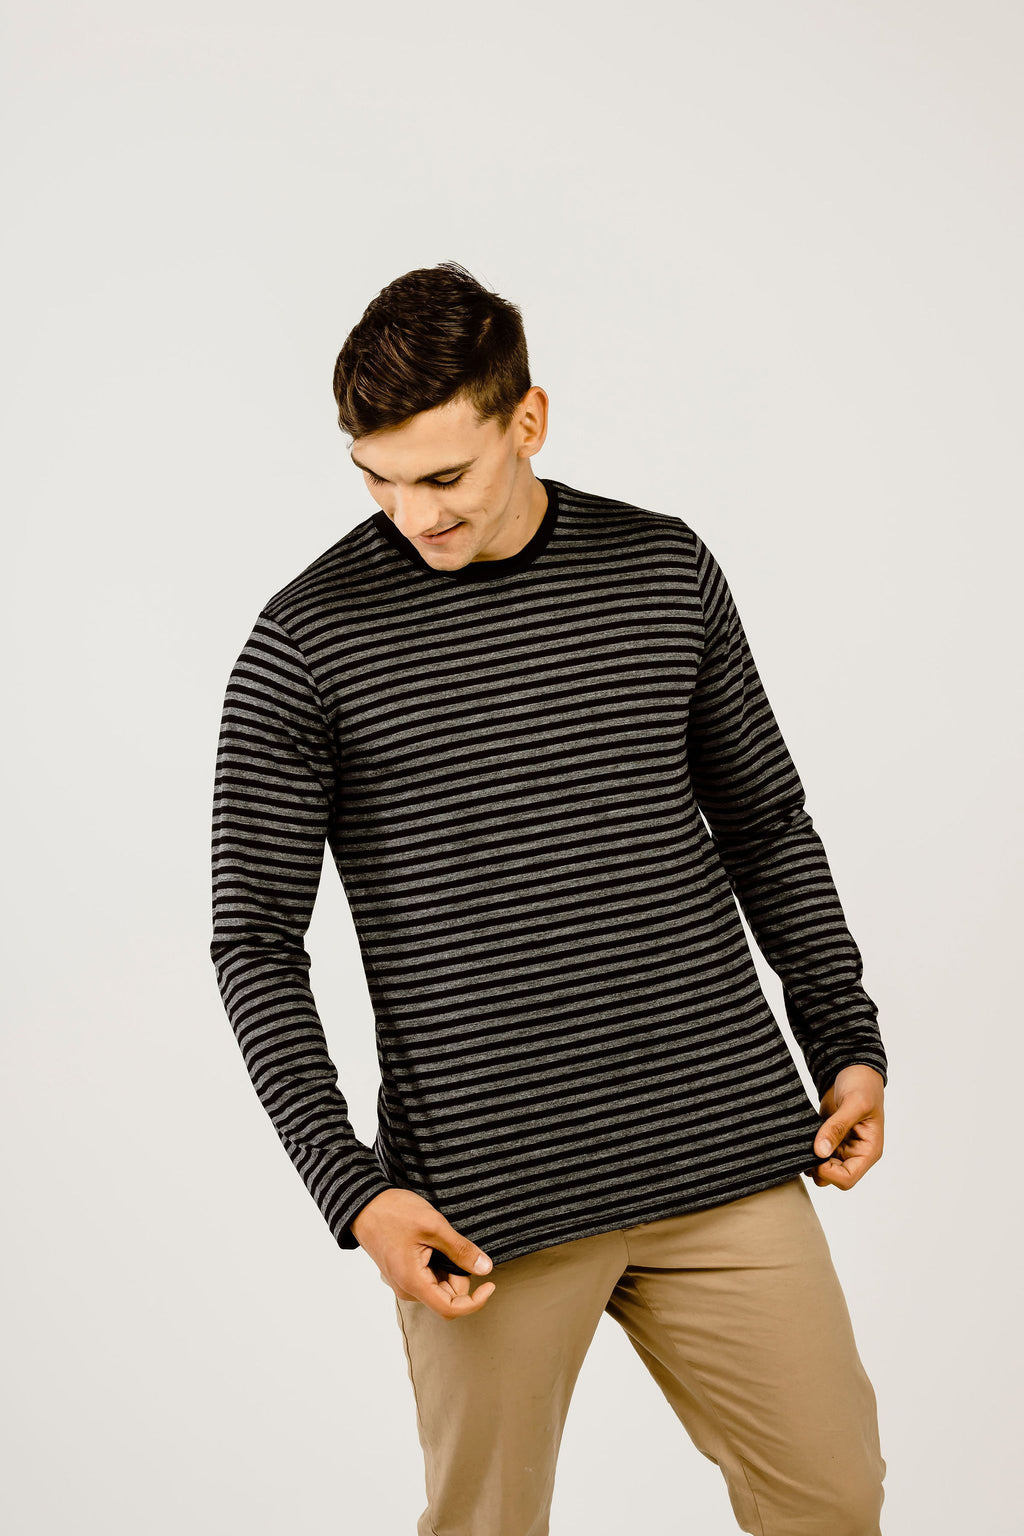 Striped Merino Long Sleeve Crew Neck T-Shirt - Kapeka NZ